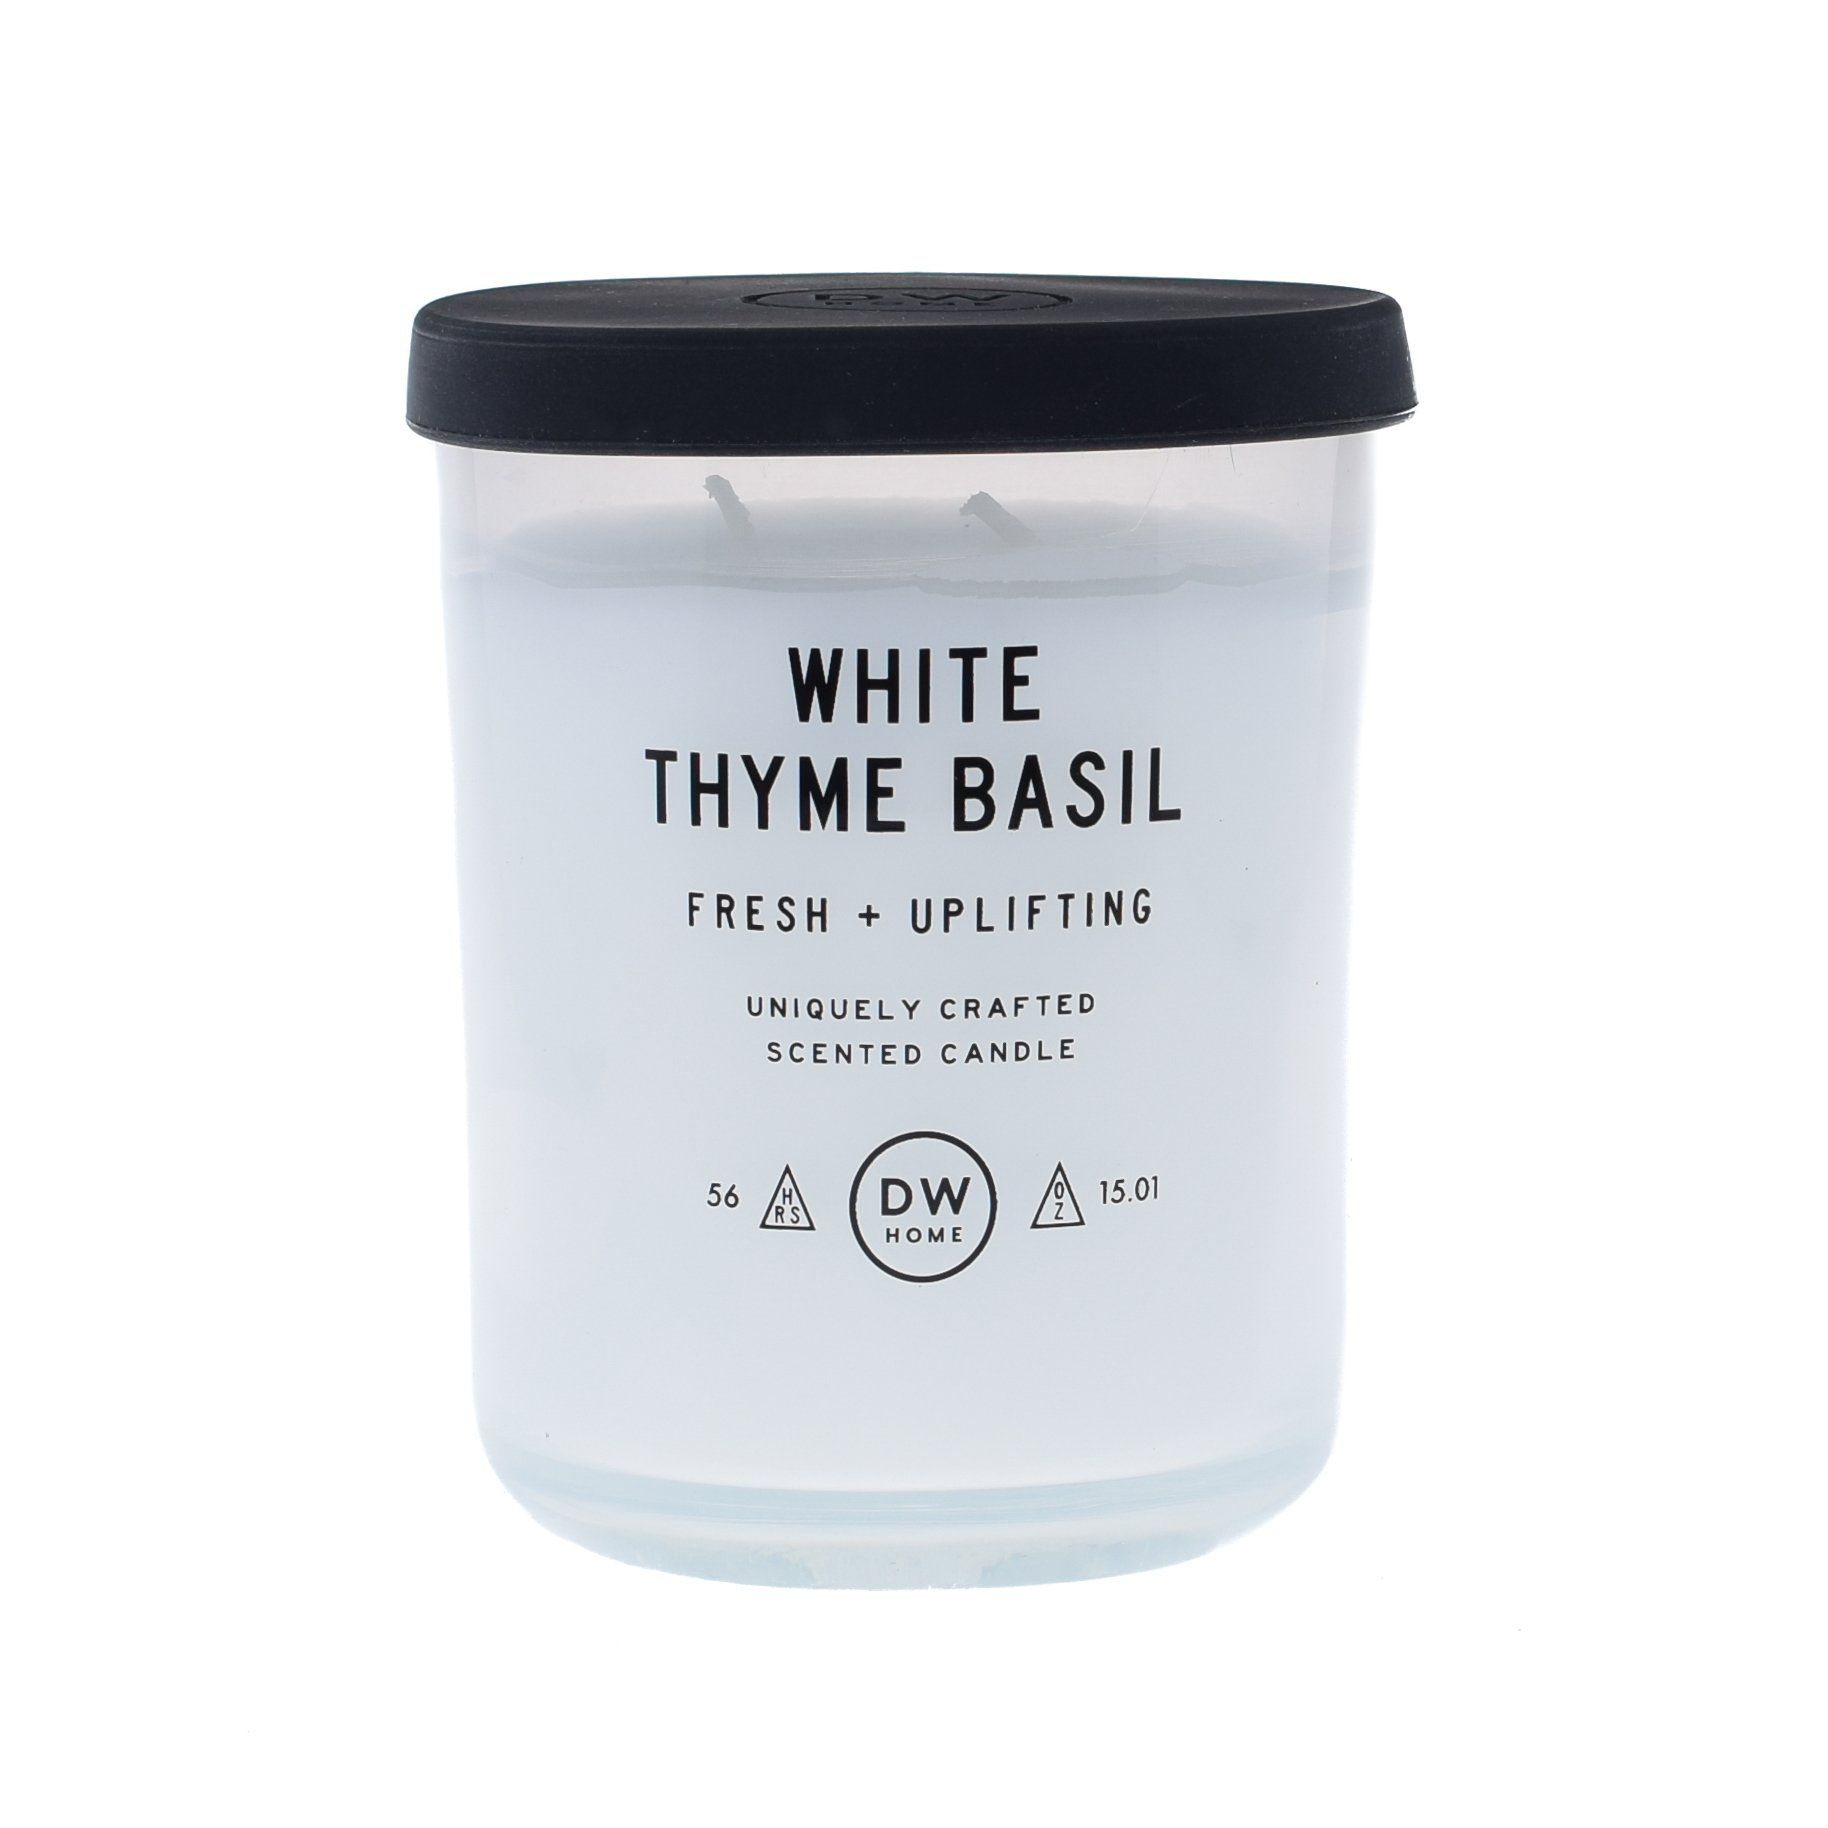 White Thyme Basil Dw Home Scented Candles Tet7000 Tet7007 With